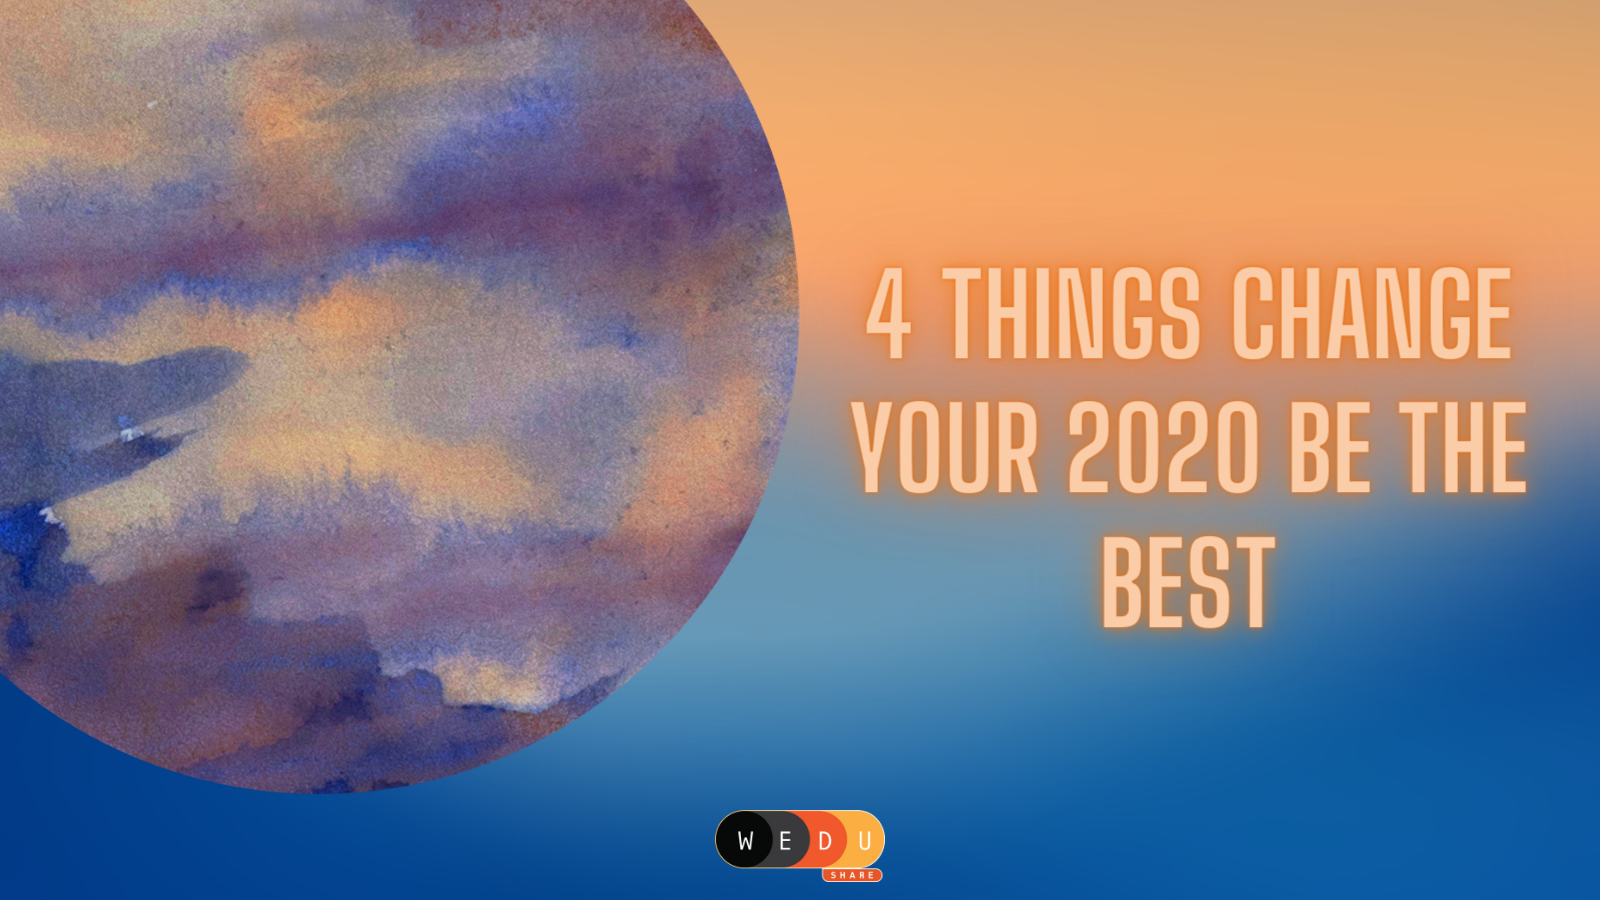 4 Things Change Your 2020 Be The Best